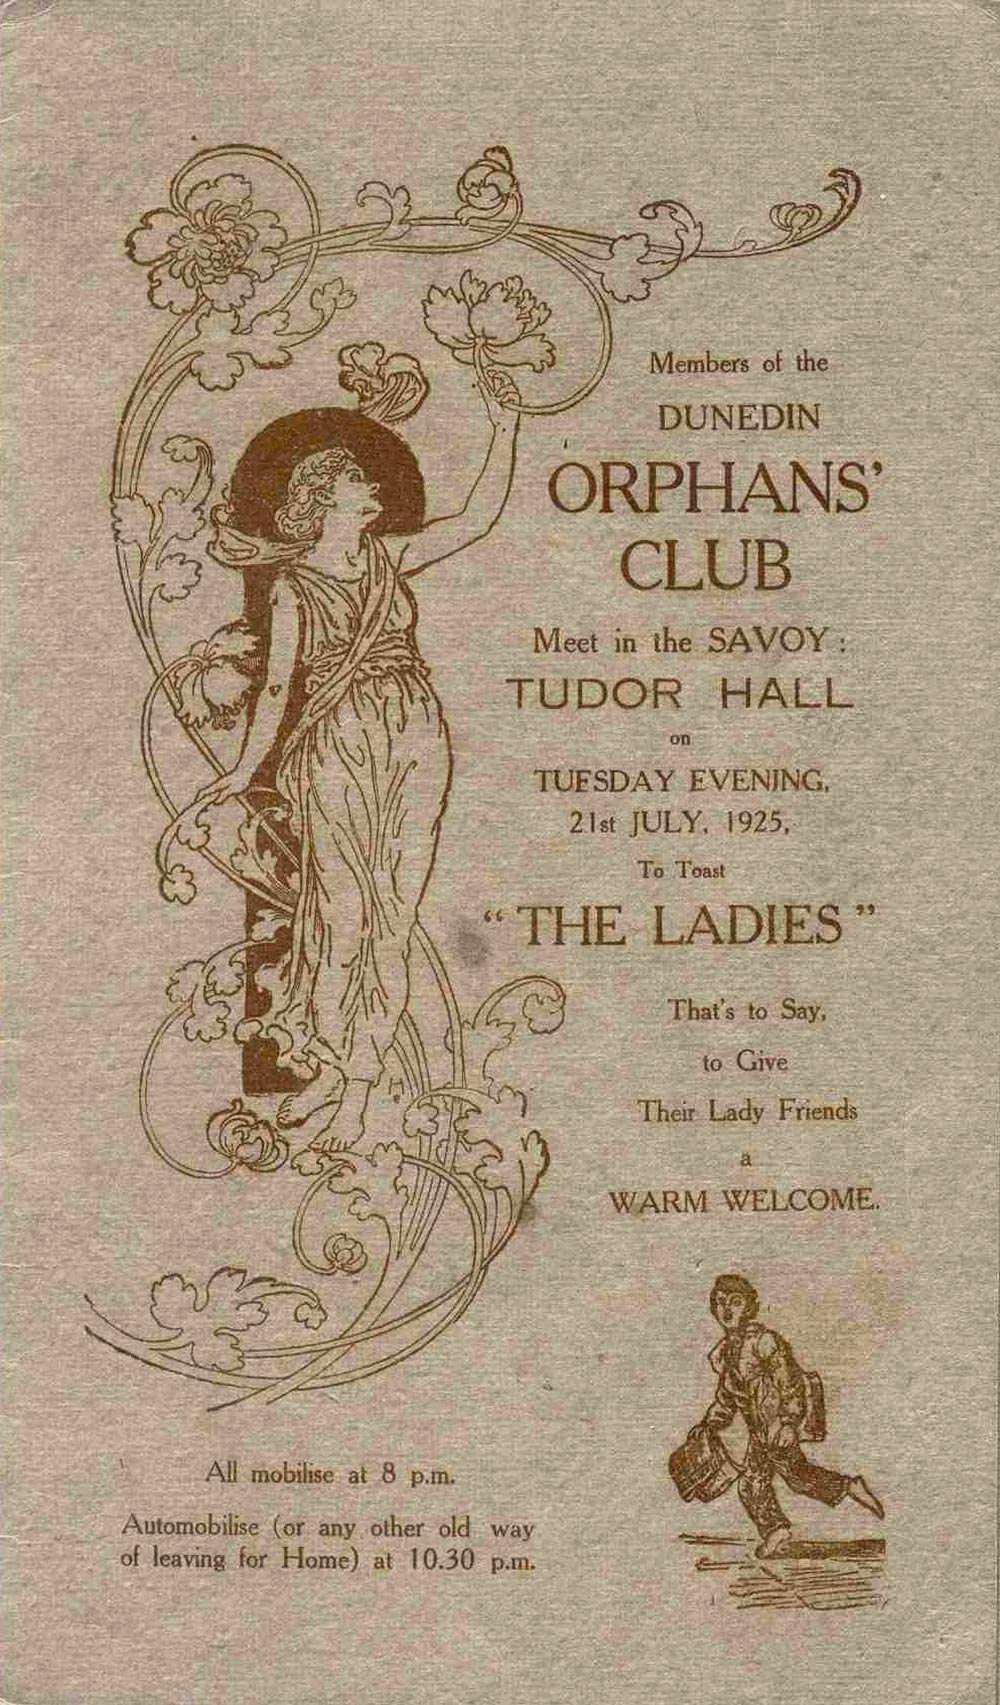 <em>Members of the Dunedin Orphans' Club meet … to toast the ladies, that's to say, to give their lady friends a warm welcome</em>. (Dunedin Orphans' Club). Tudor Hall, Savoy, Dunedin, July 21, 1925.